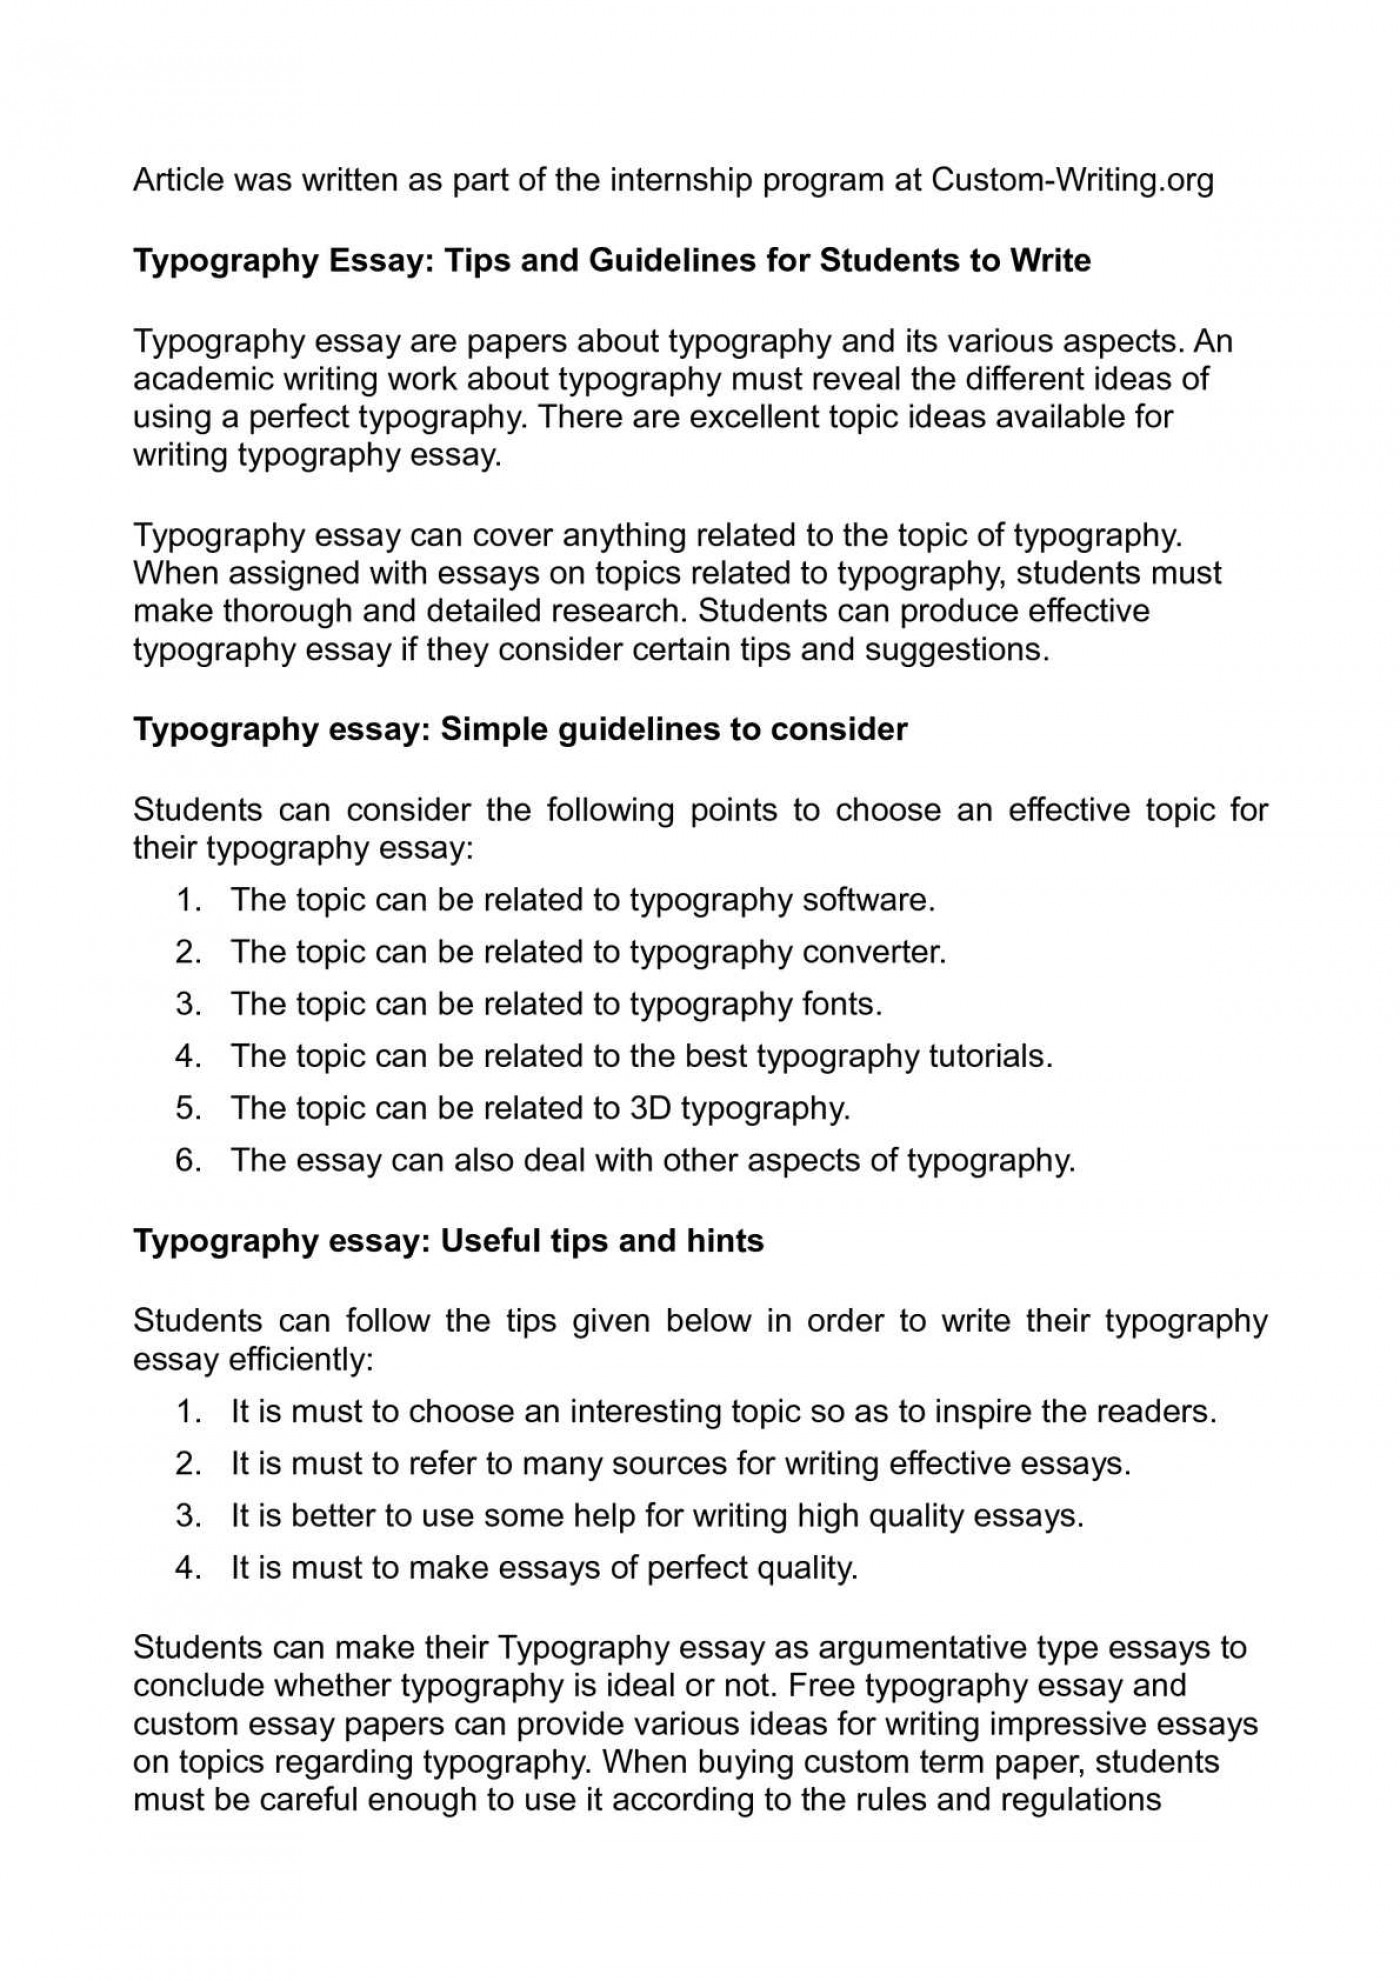 003 Essays On Writing Typography Essay Tips And Guidelines